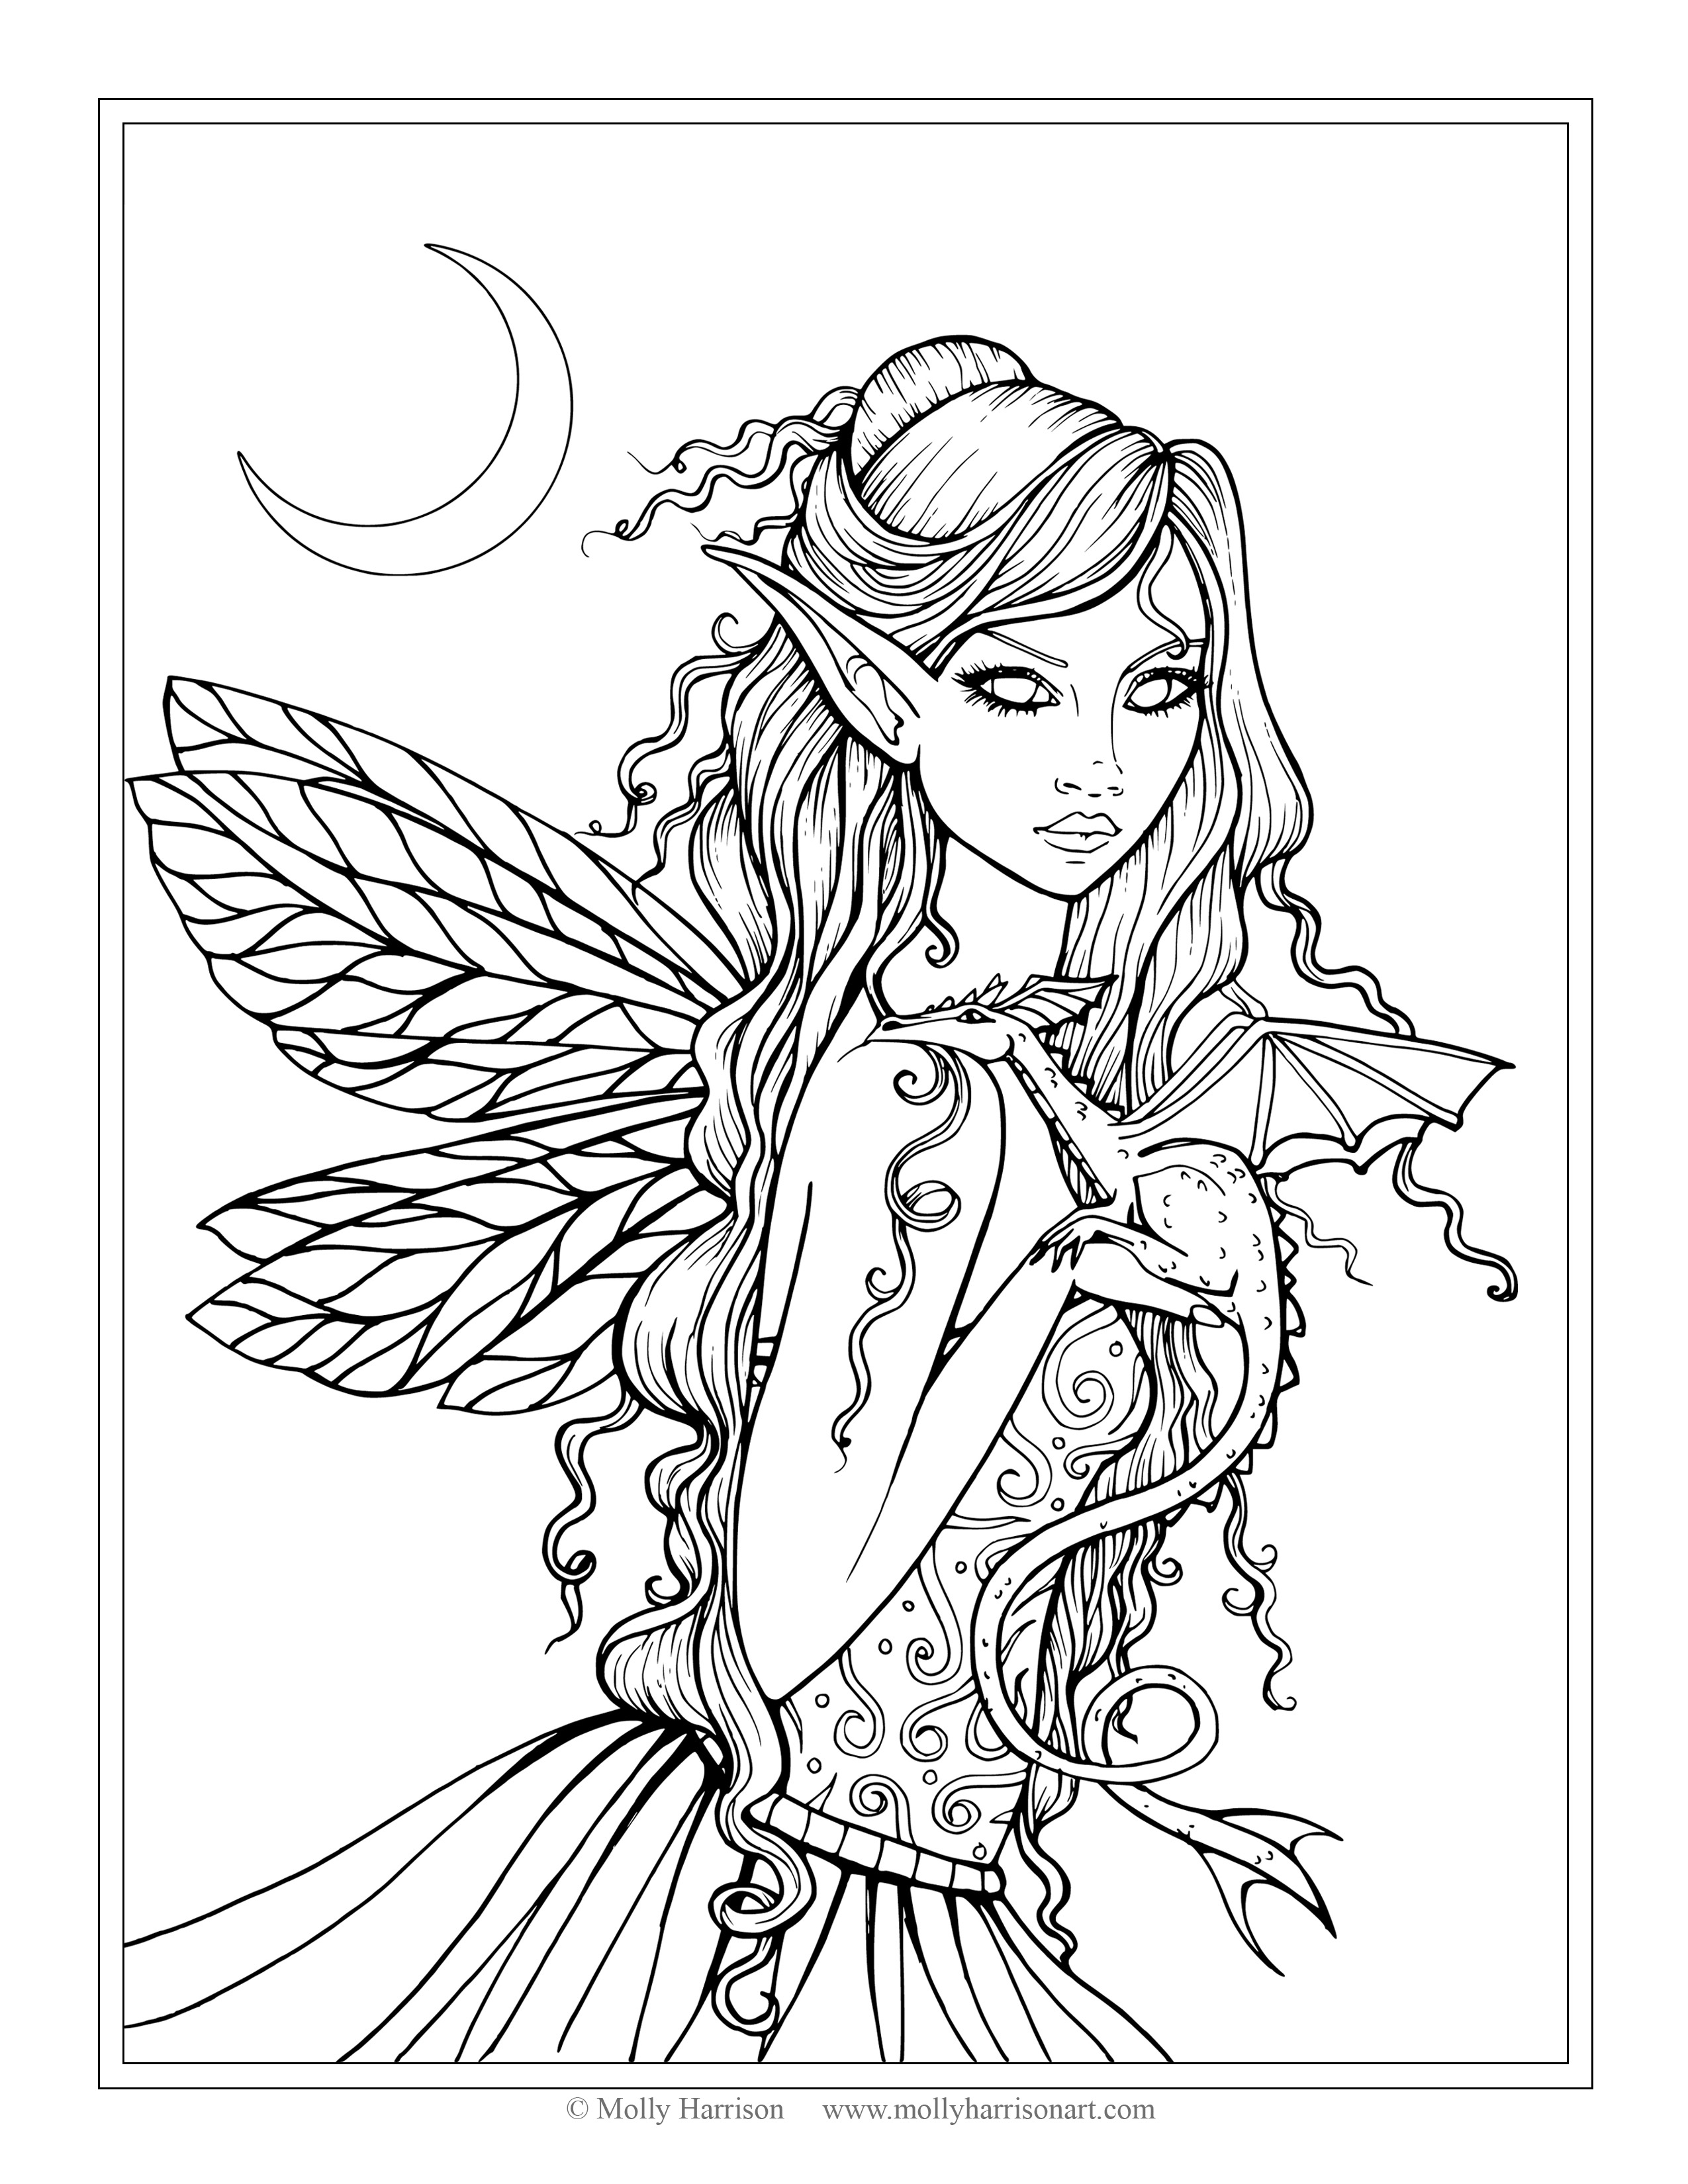 Fantasy Coloring Pages Free Fairy And Dragon Coloring Page Molly Harrison Fantasy Art